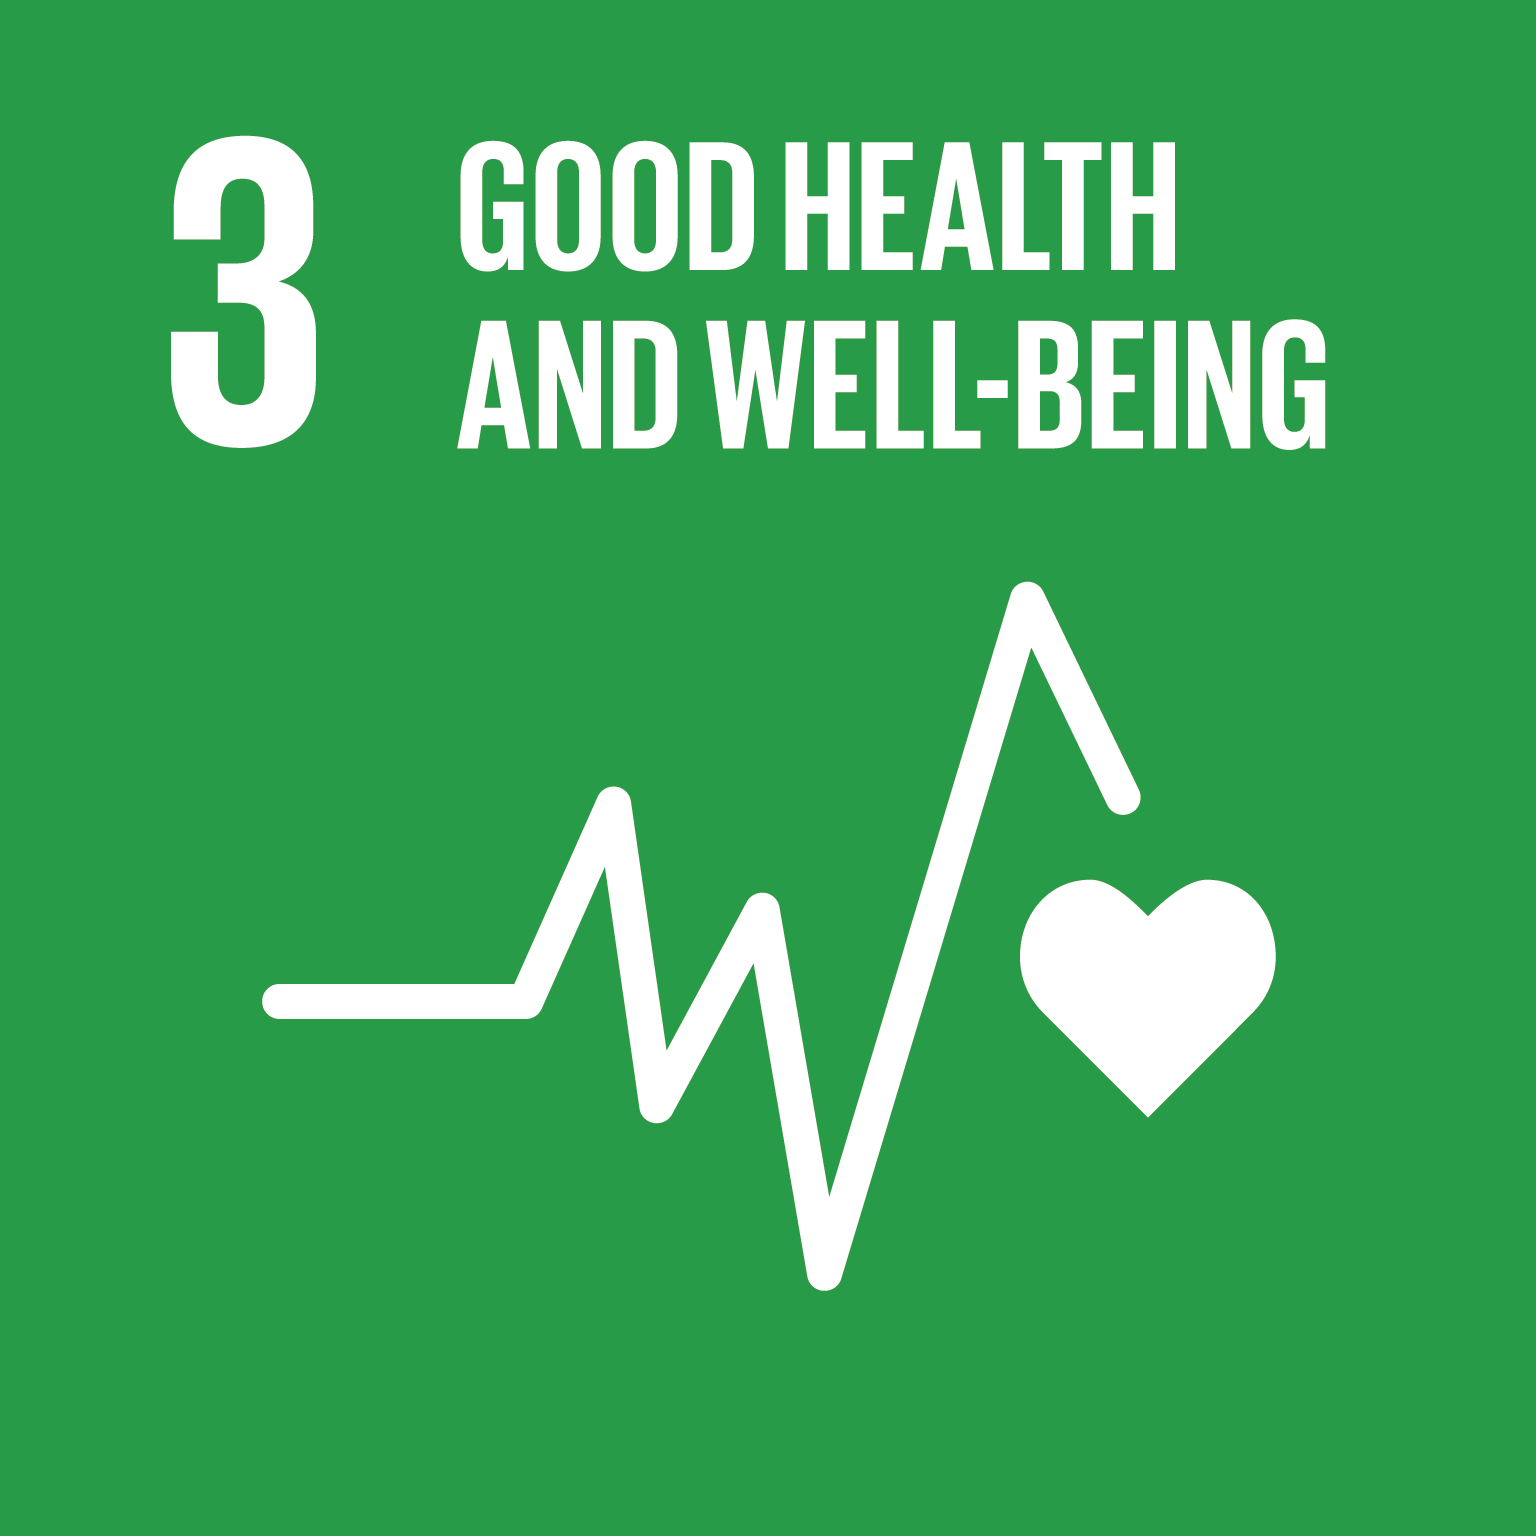 Ensure healthy lives and promote well-being for all at all ages.